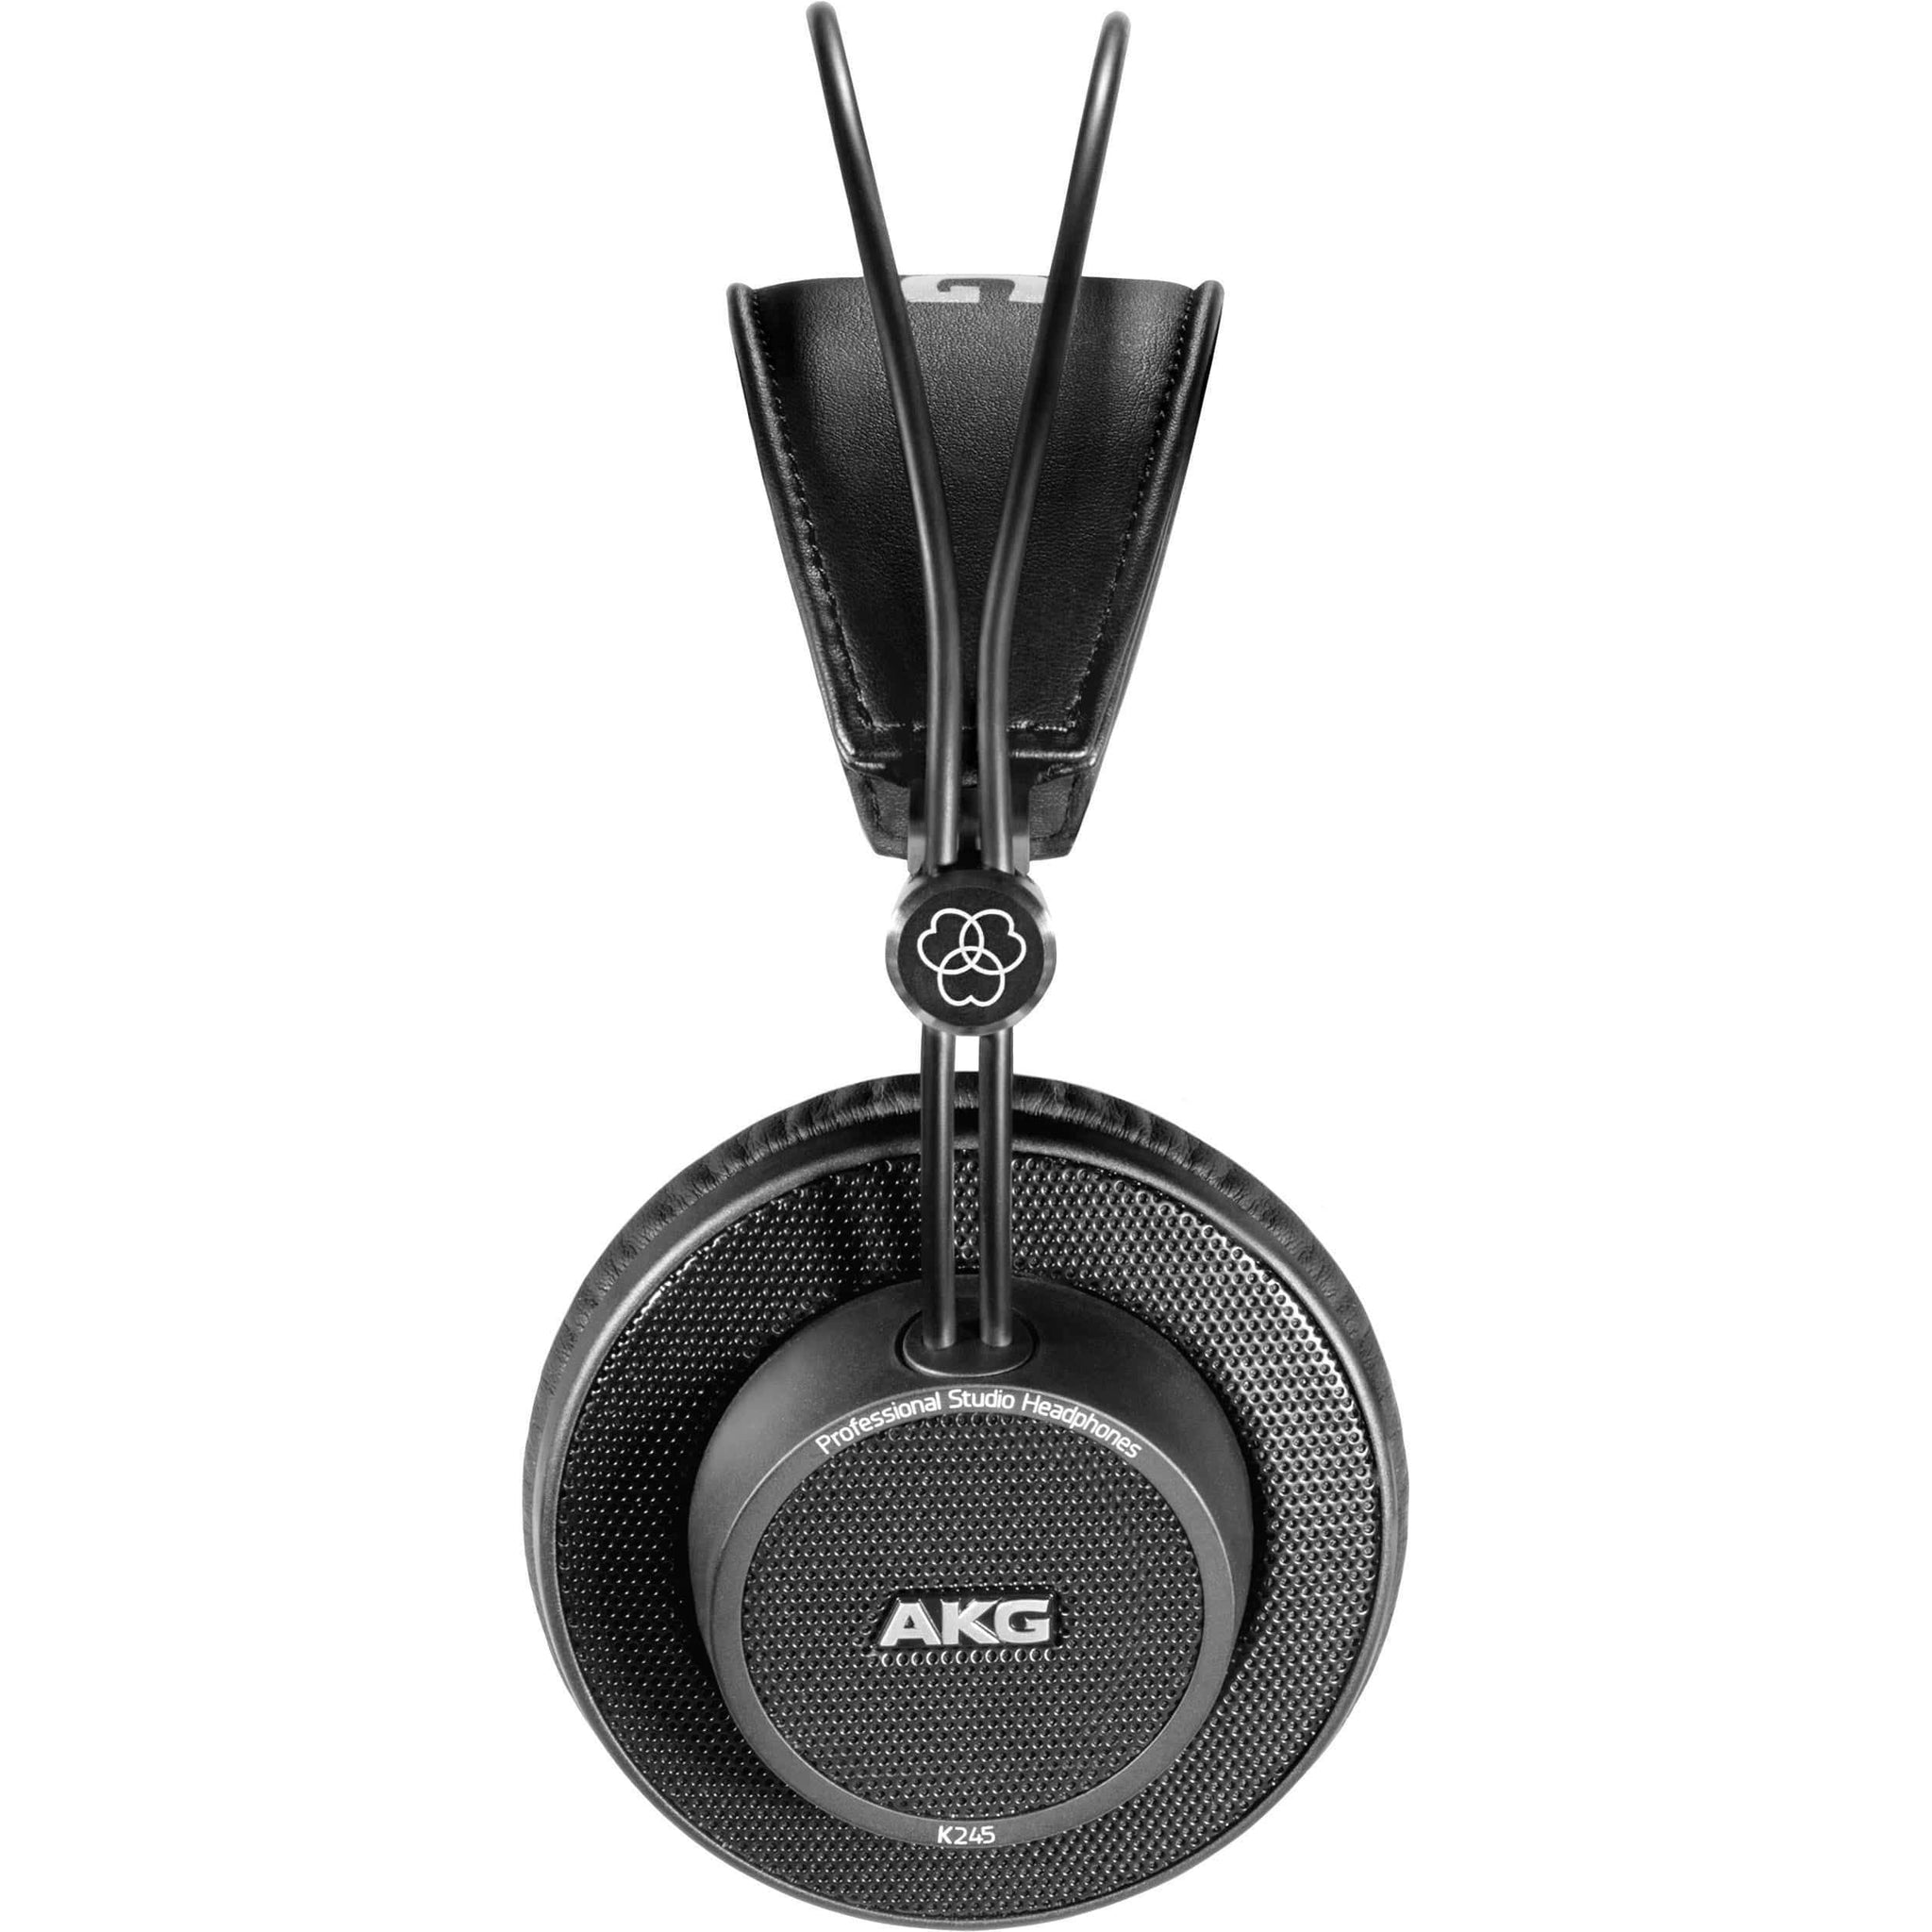 AKG K245 Over-Ear, Open-Back Studio Headphones